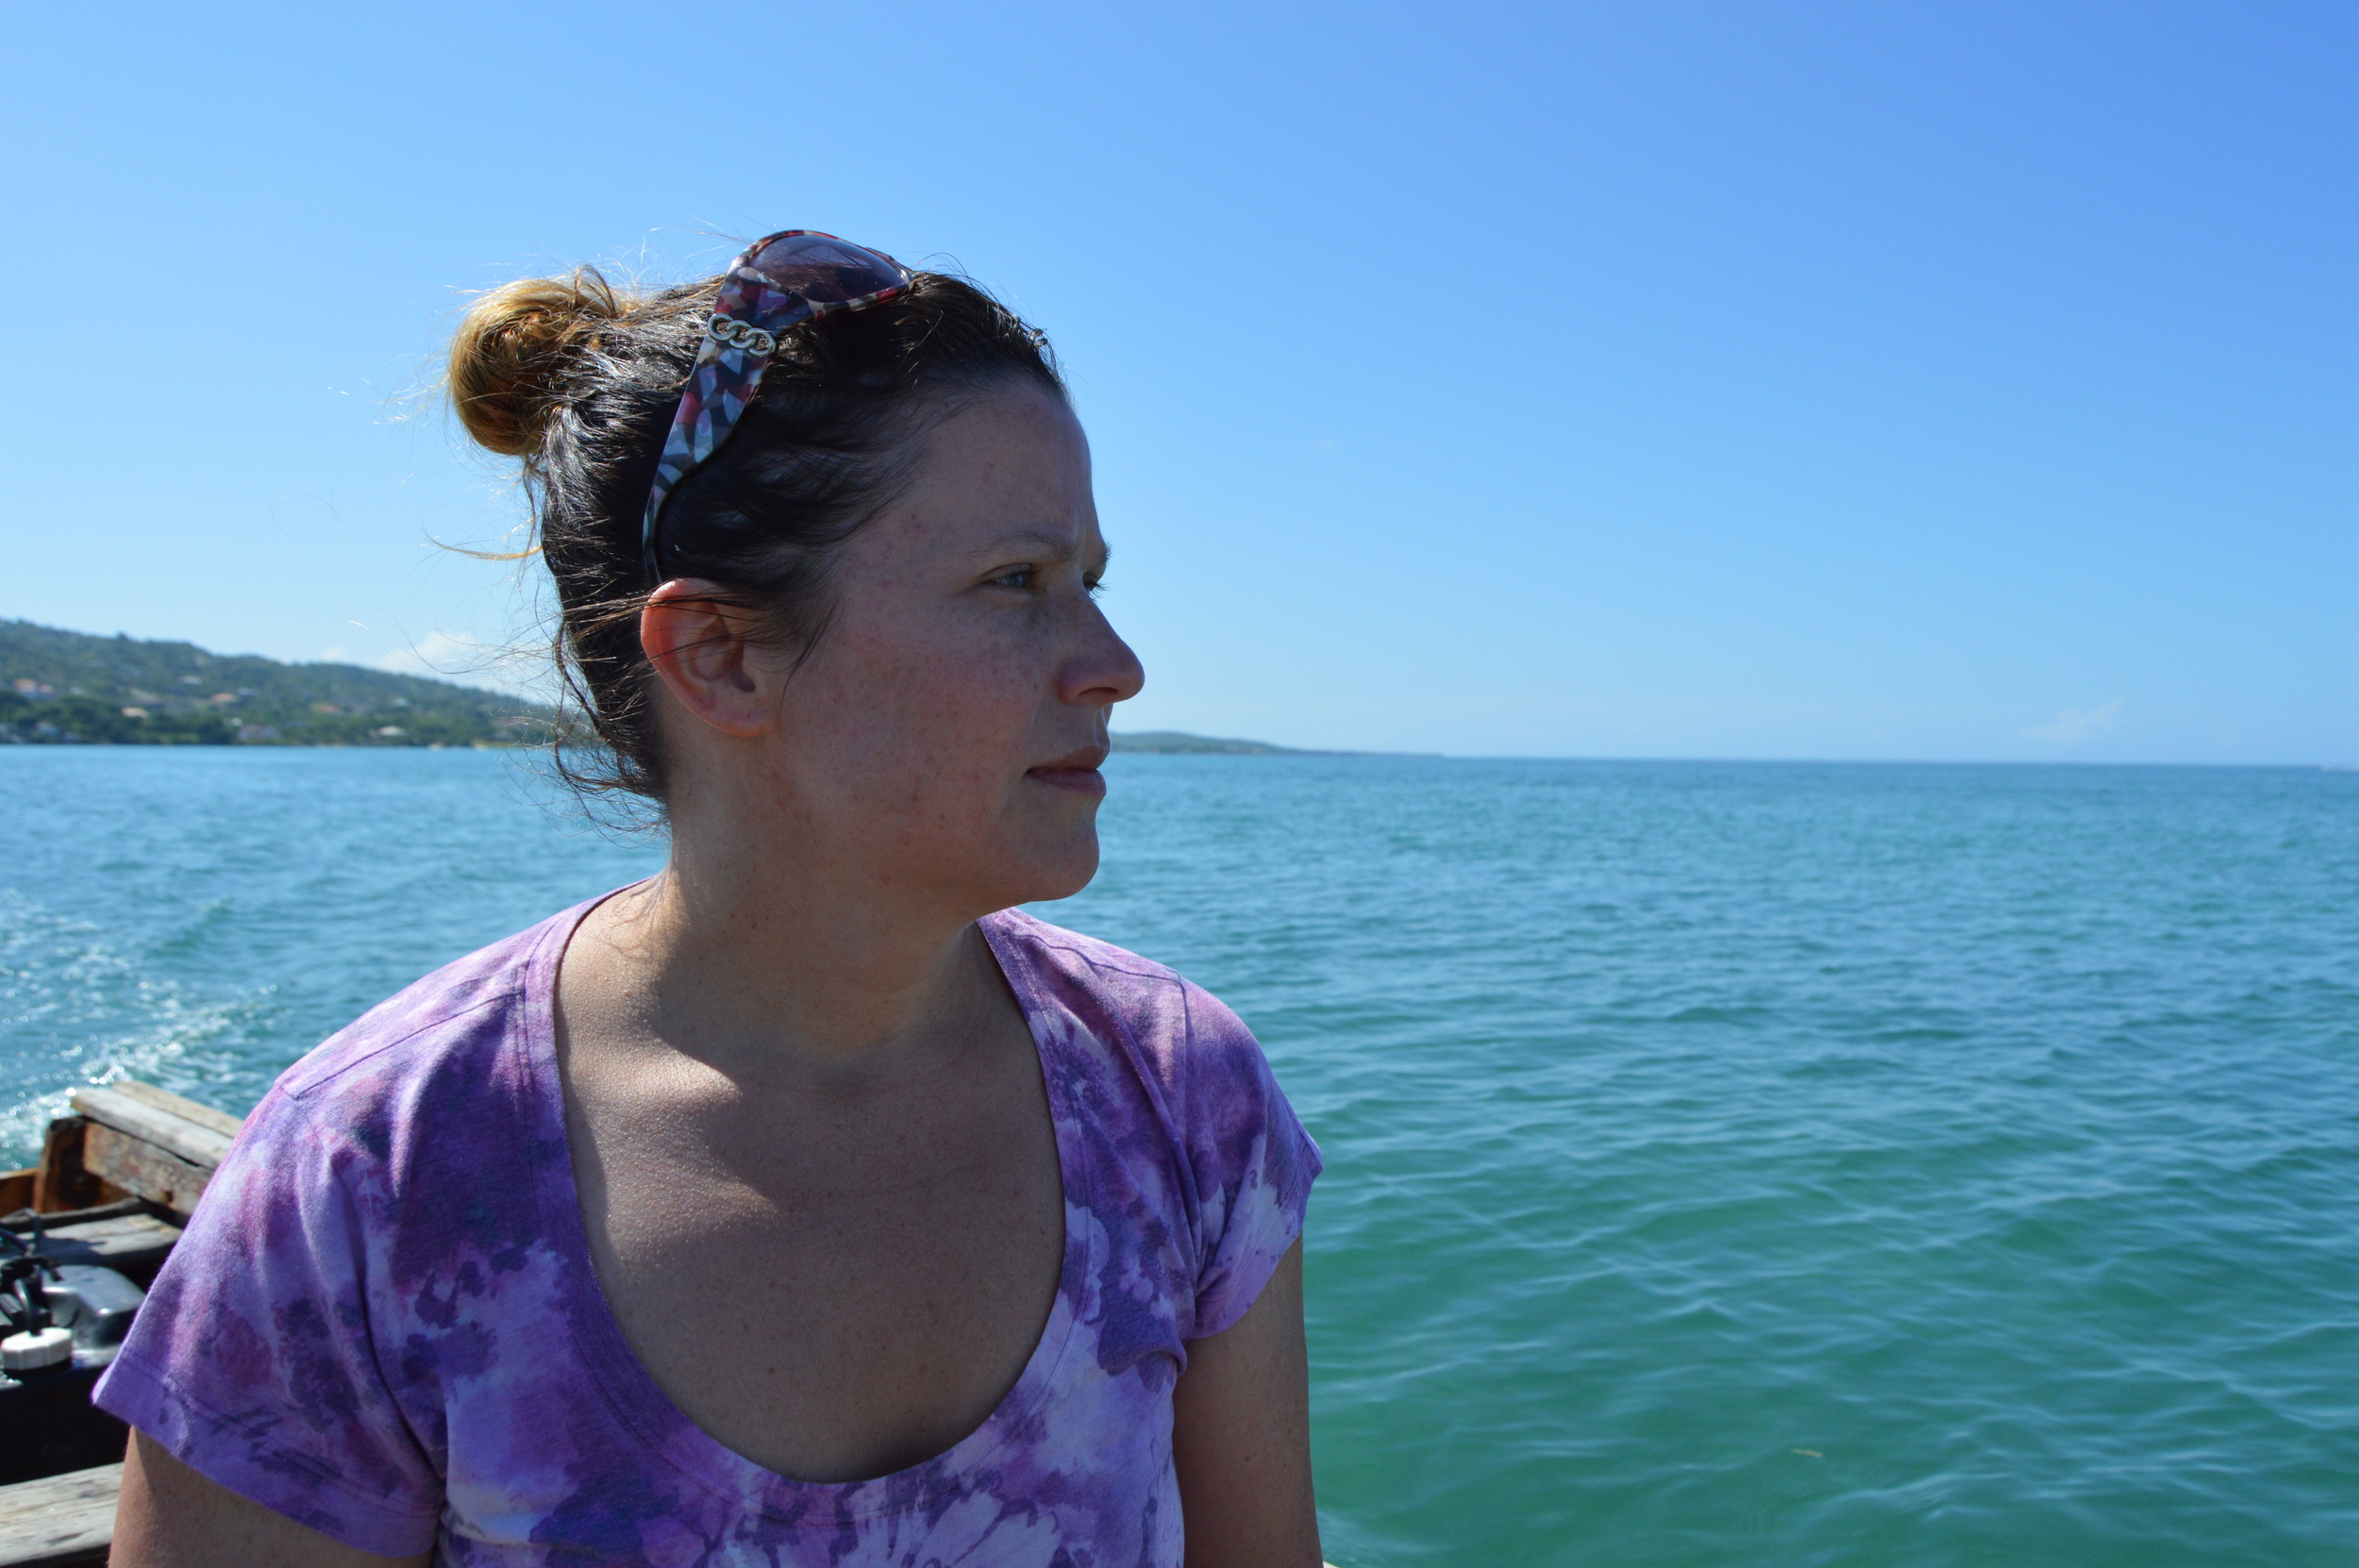 The author on a boat ride.